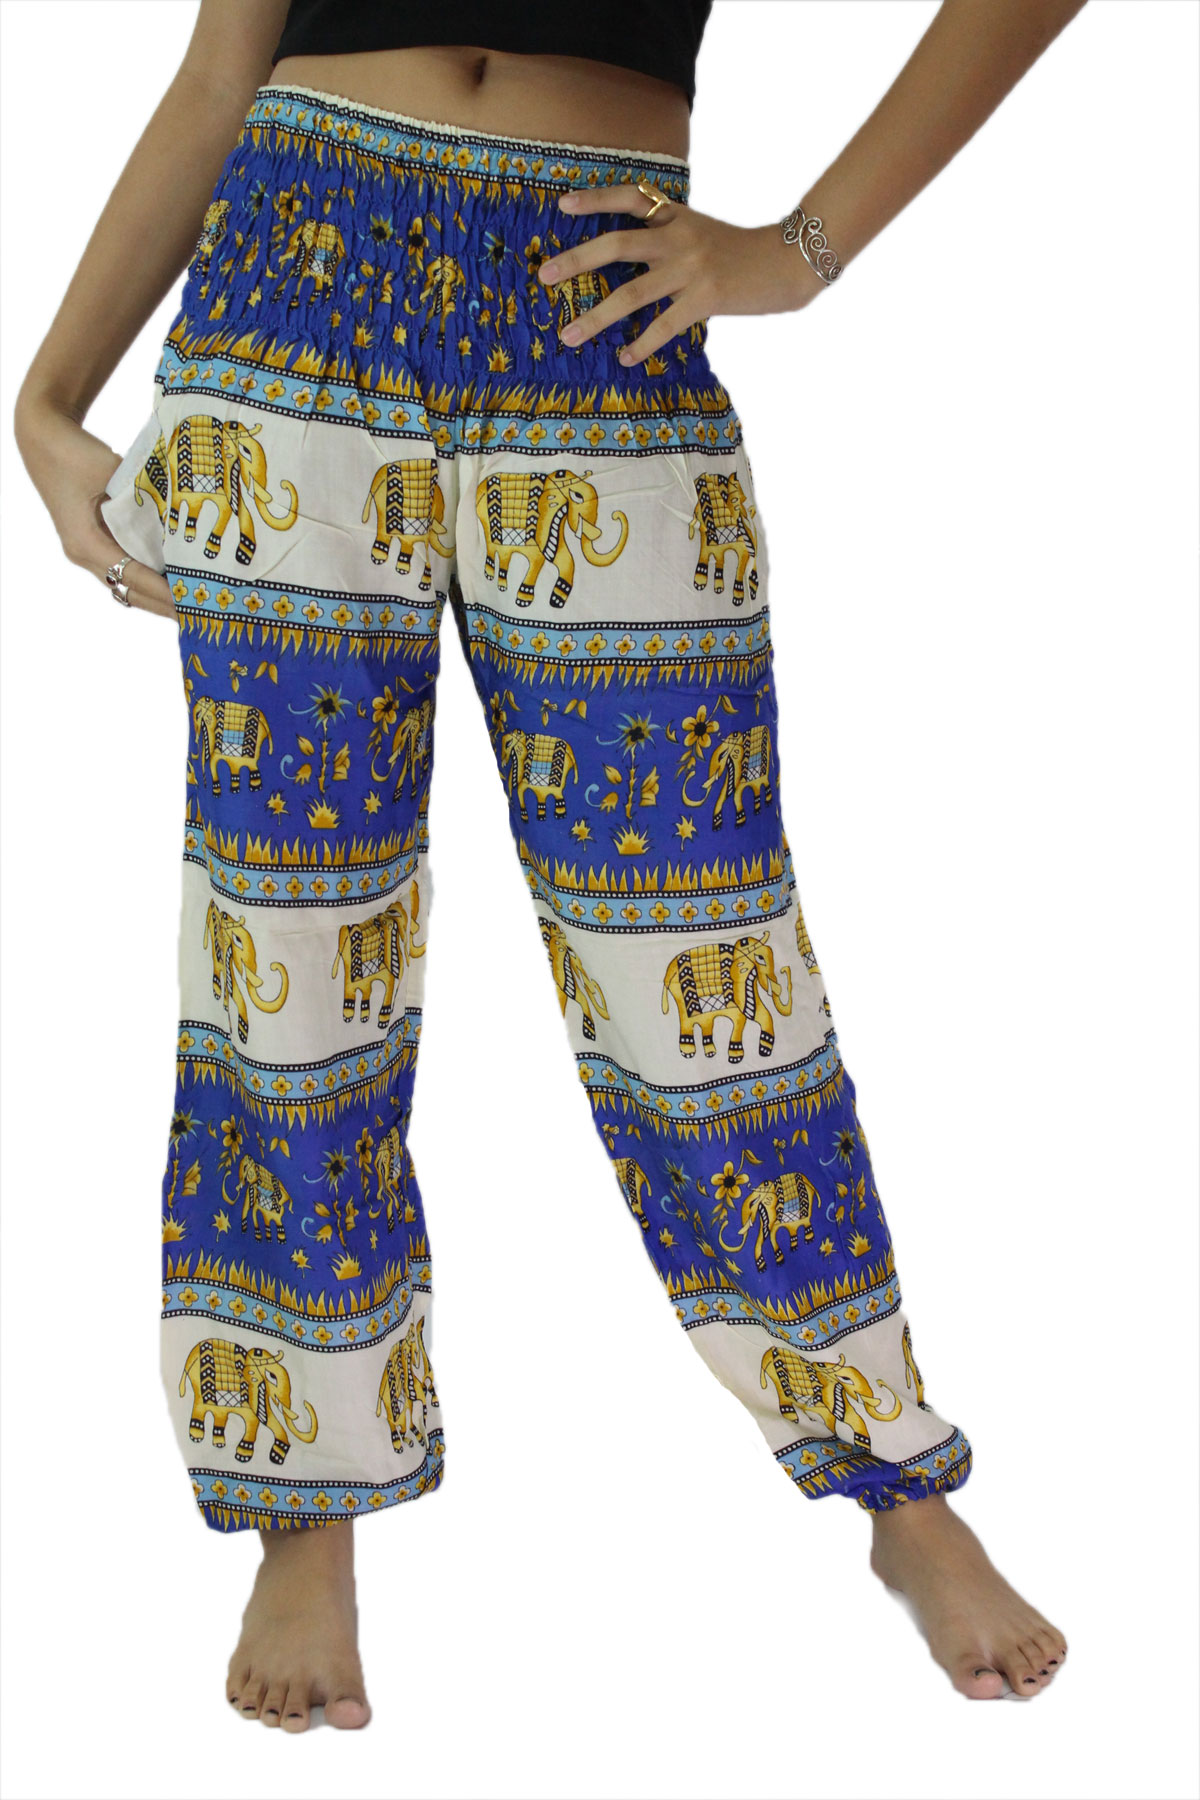 Yoga Pants With Designs Yoga Pants Vintage Elephant